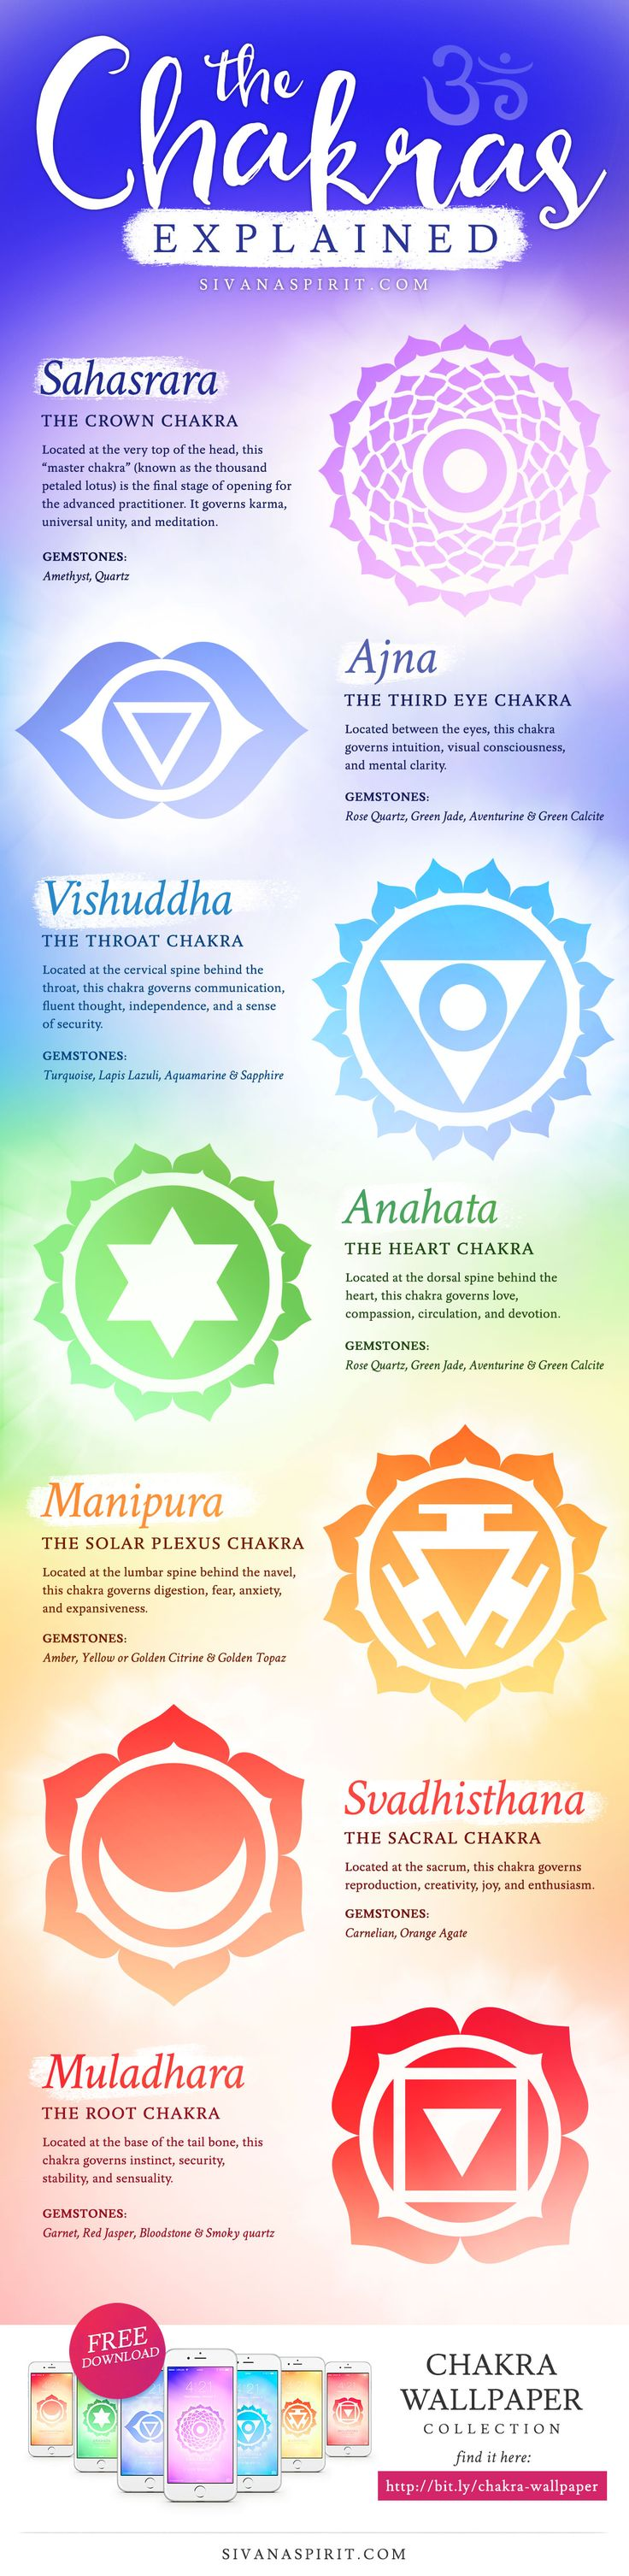 This explanation of chakras is not only easy to understand, it's beautiful to look at too :)